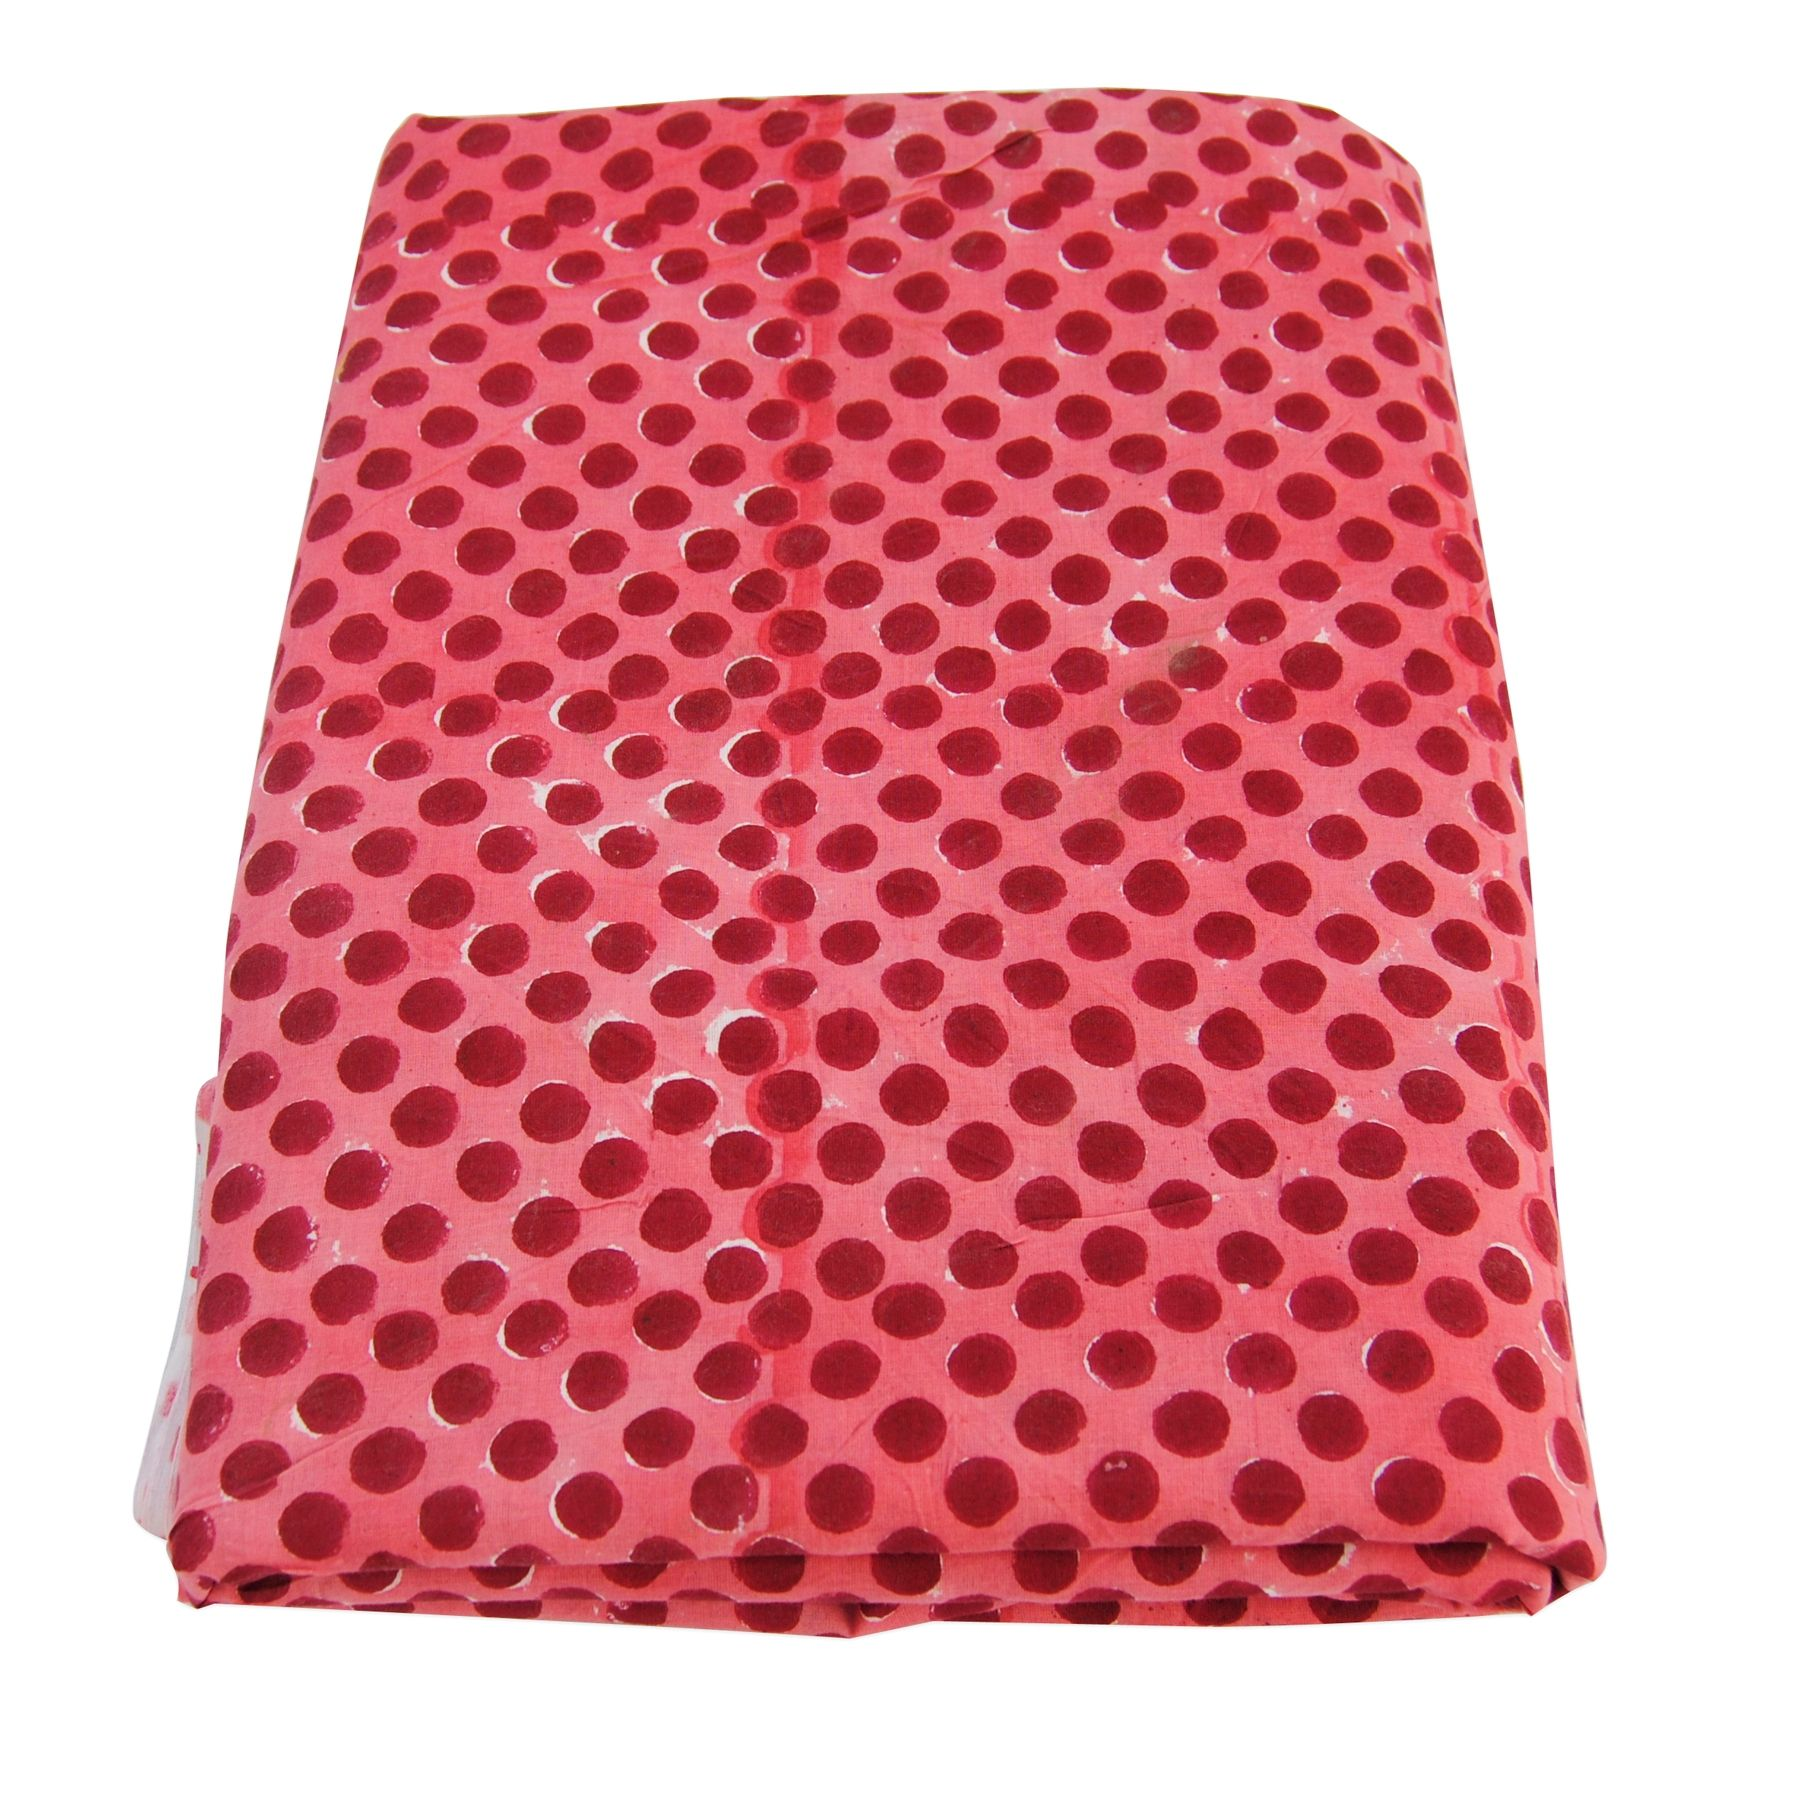 Polka Dot Block Printed Indian Natural Cotton Clothing